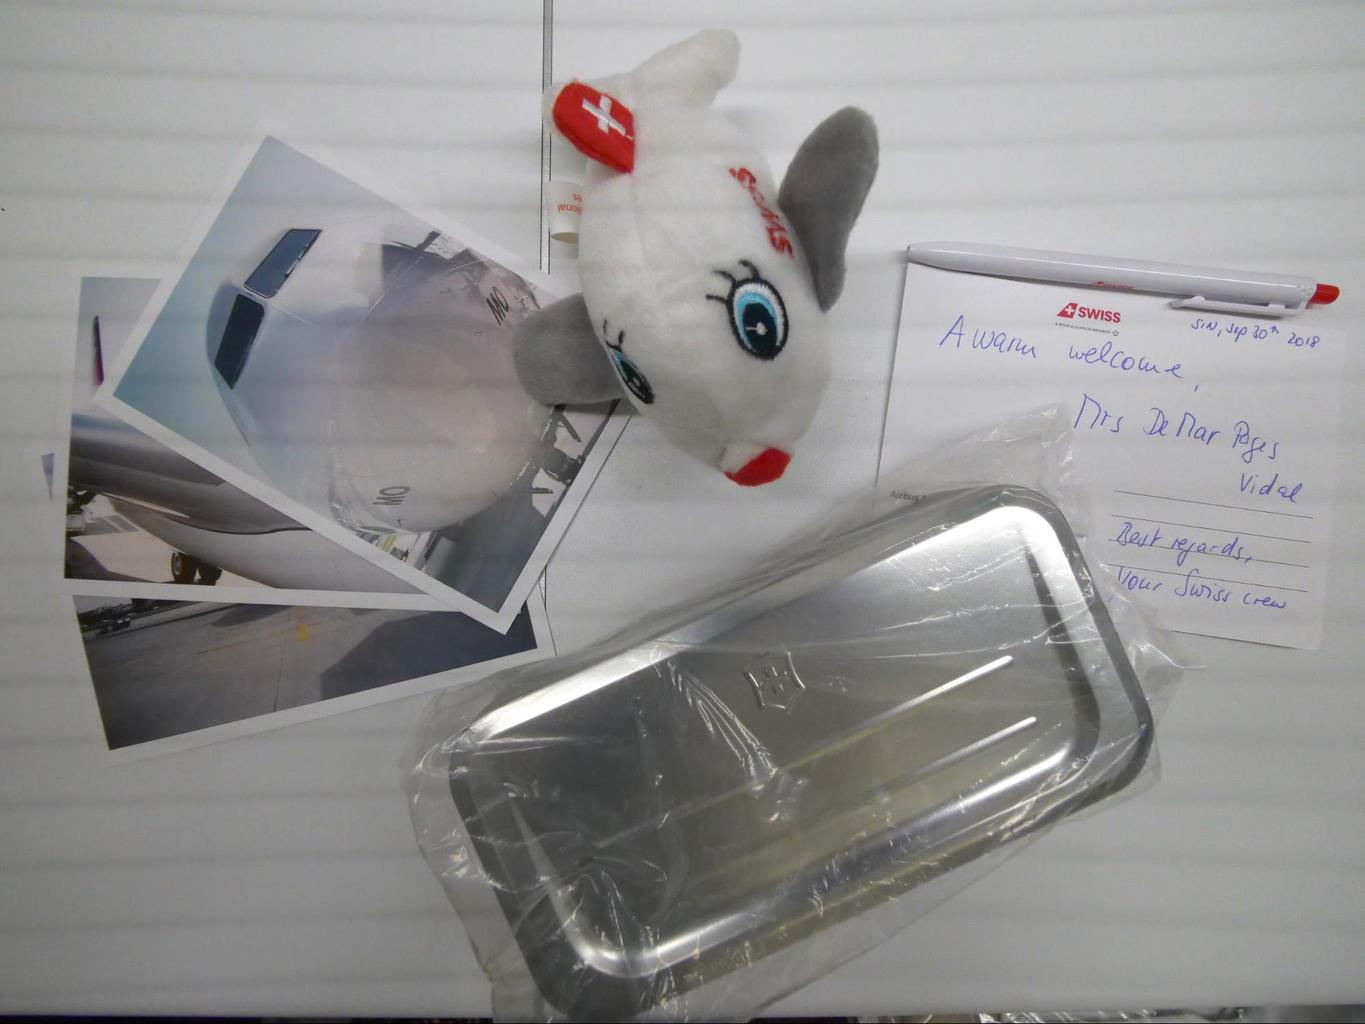 Welcome letter and gift when boarding